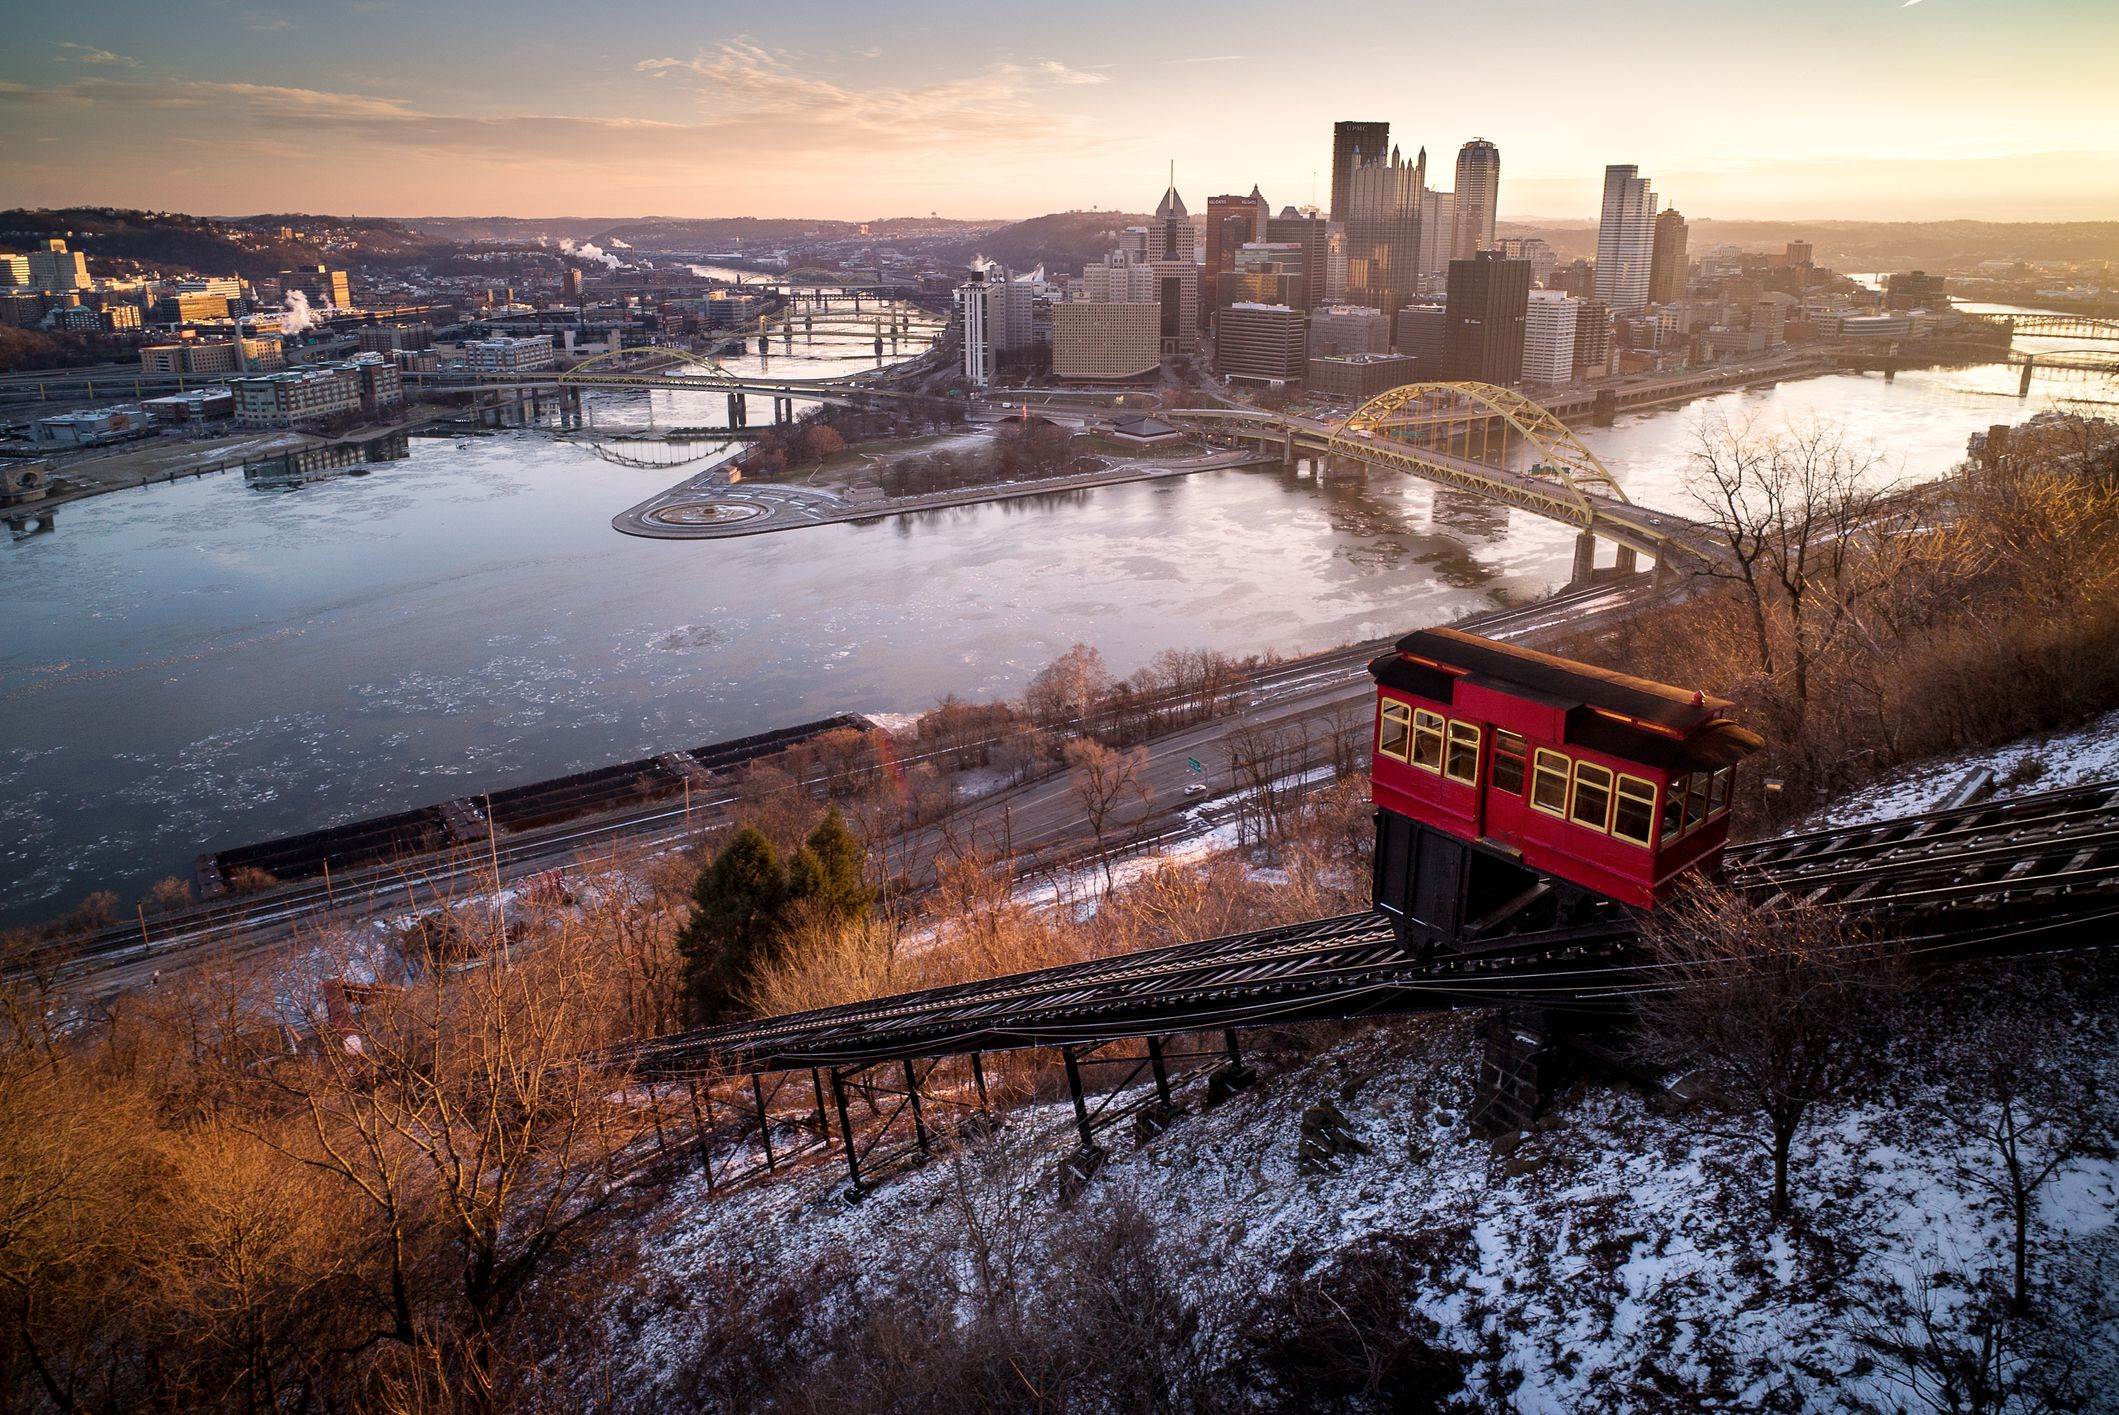 Winter Activities In Pittsburgh  Overview of Pittsburgh in Winter